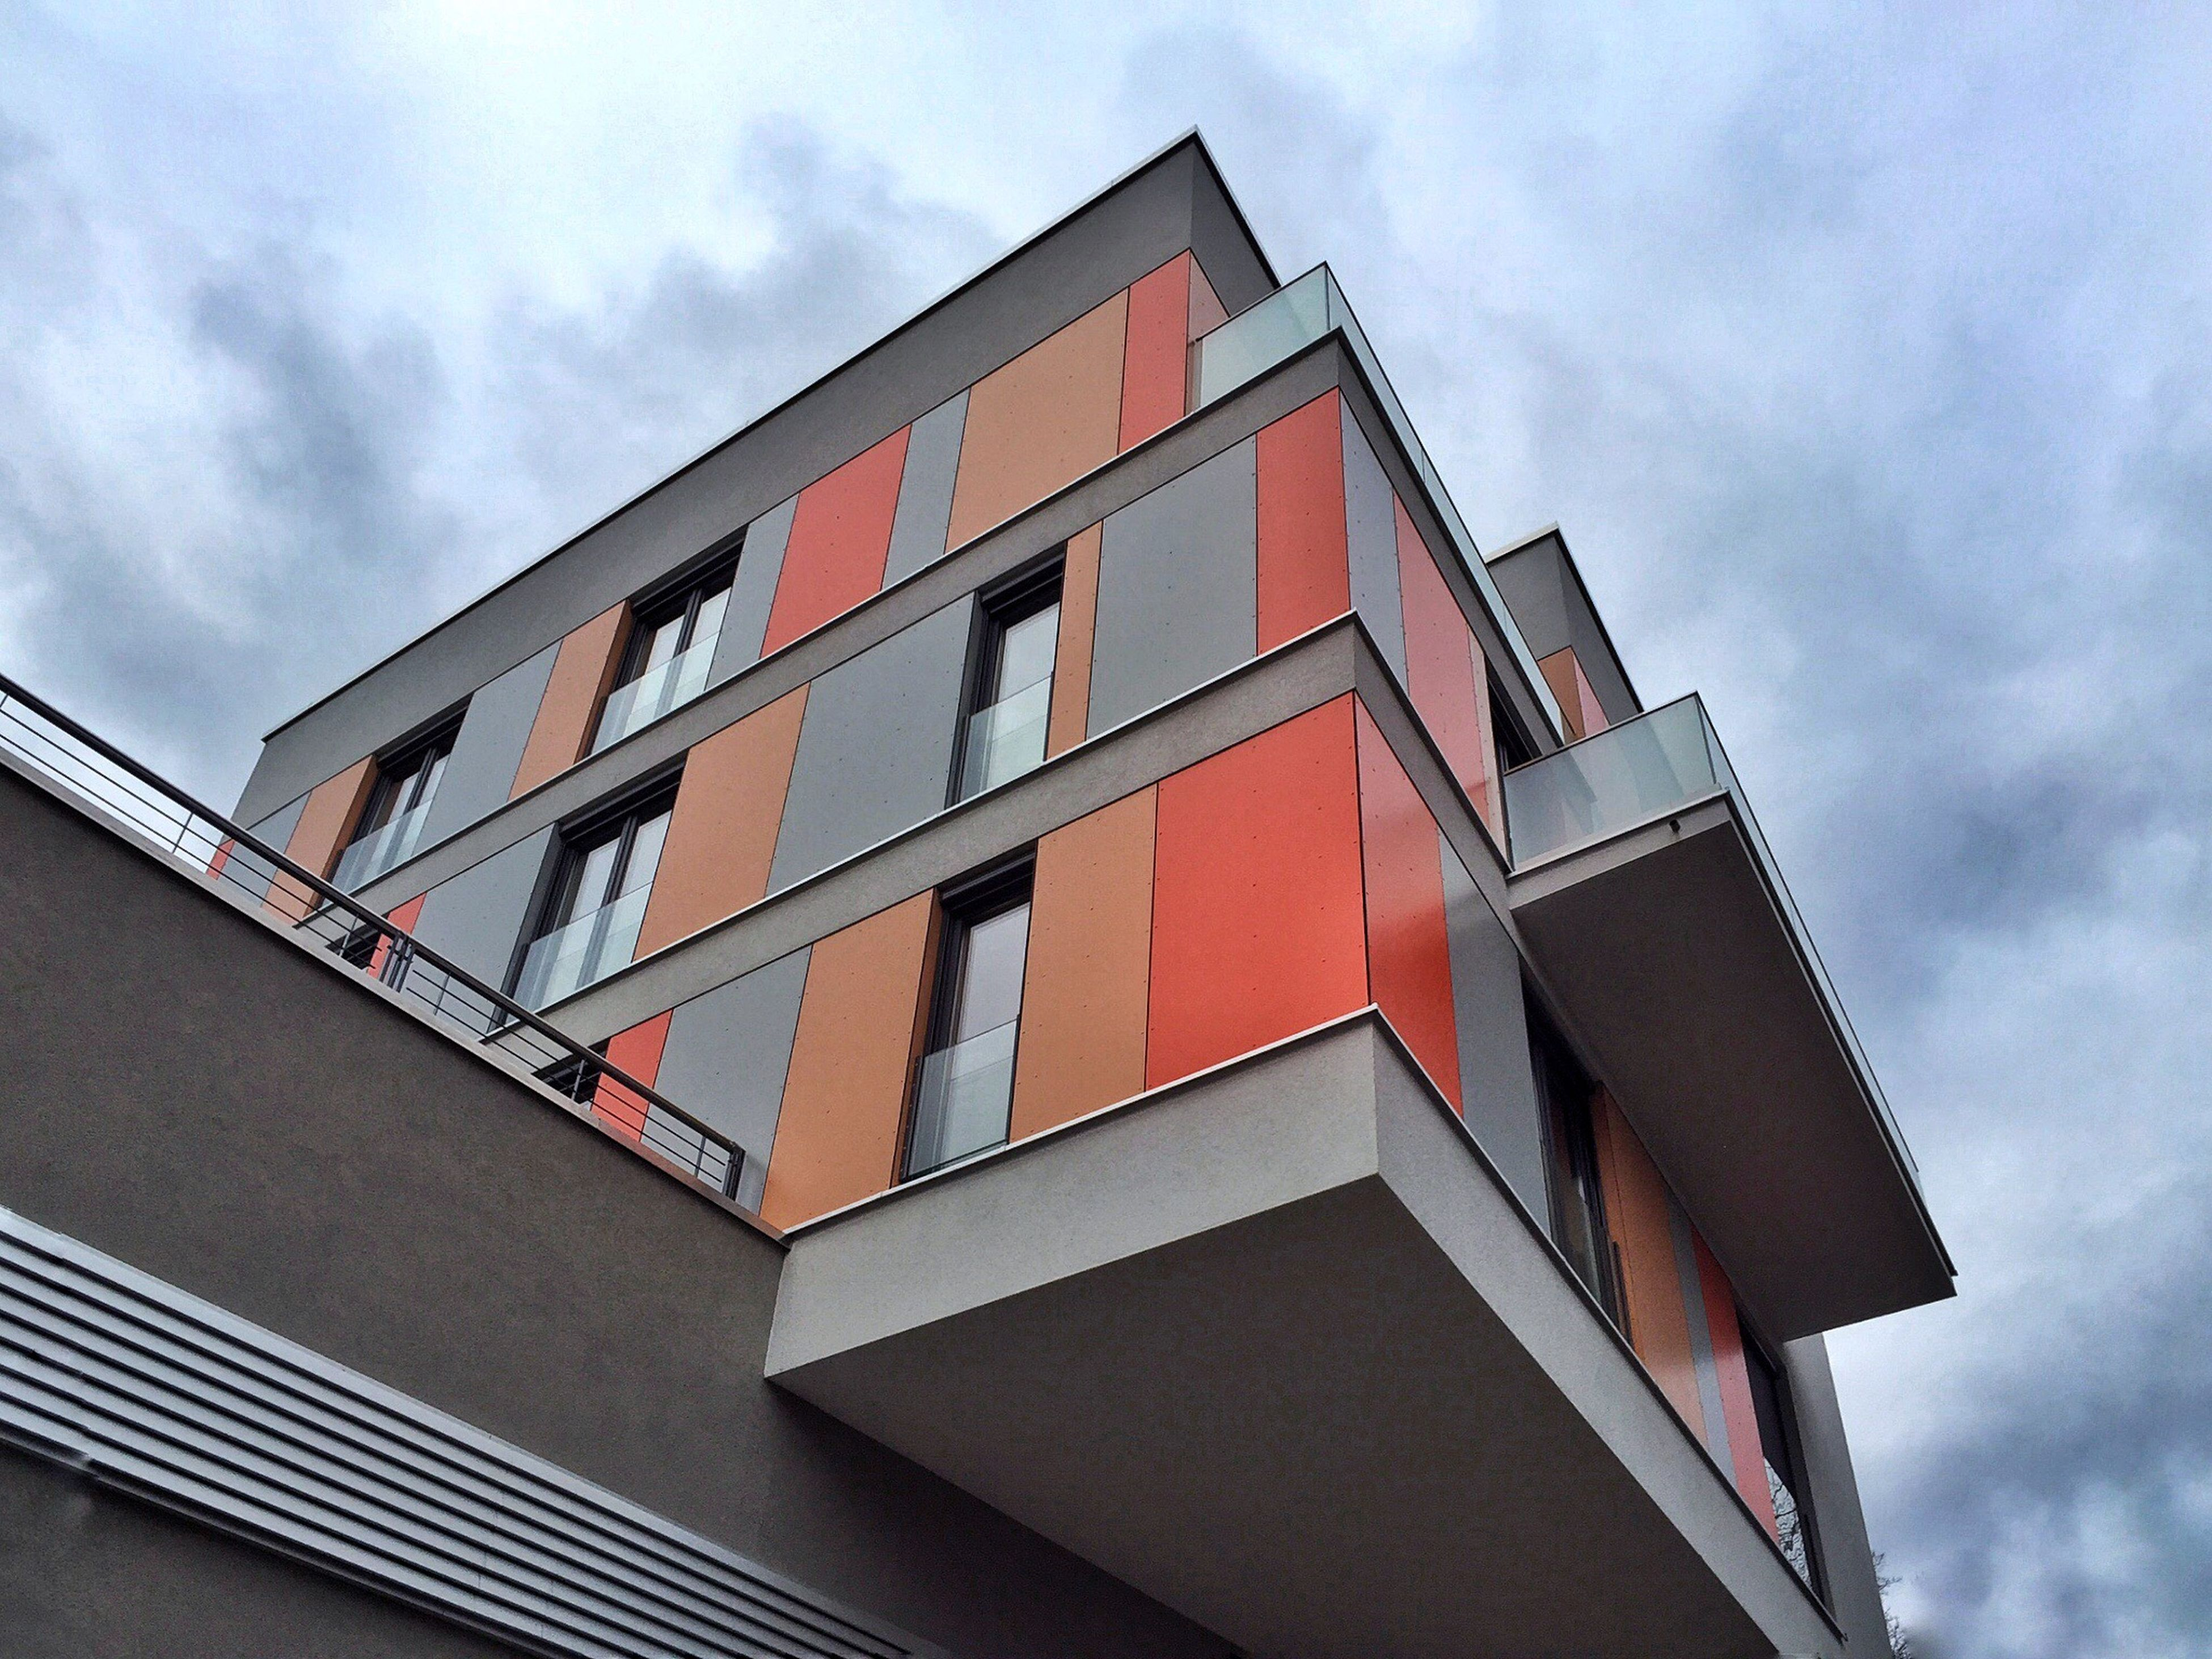 architecture, building exterior, built structure, low angle view, sky, window, cloud - sky, residential structure, building, residential building, cloud, house, cloudy, day, city, outdoors, no people, high section, balcony, glass - material